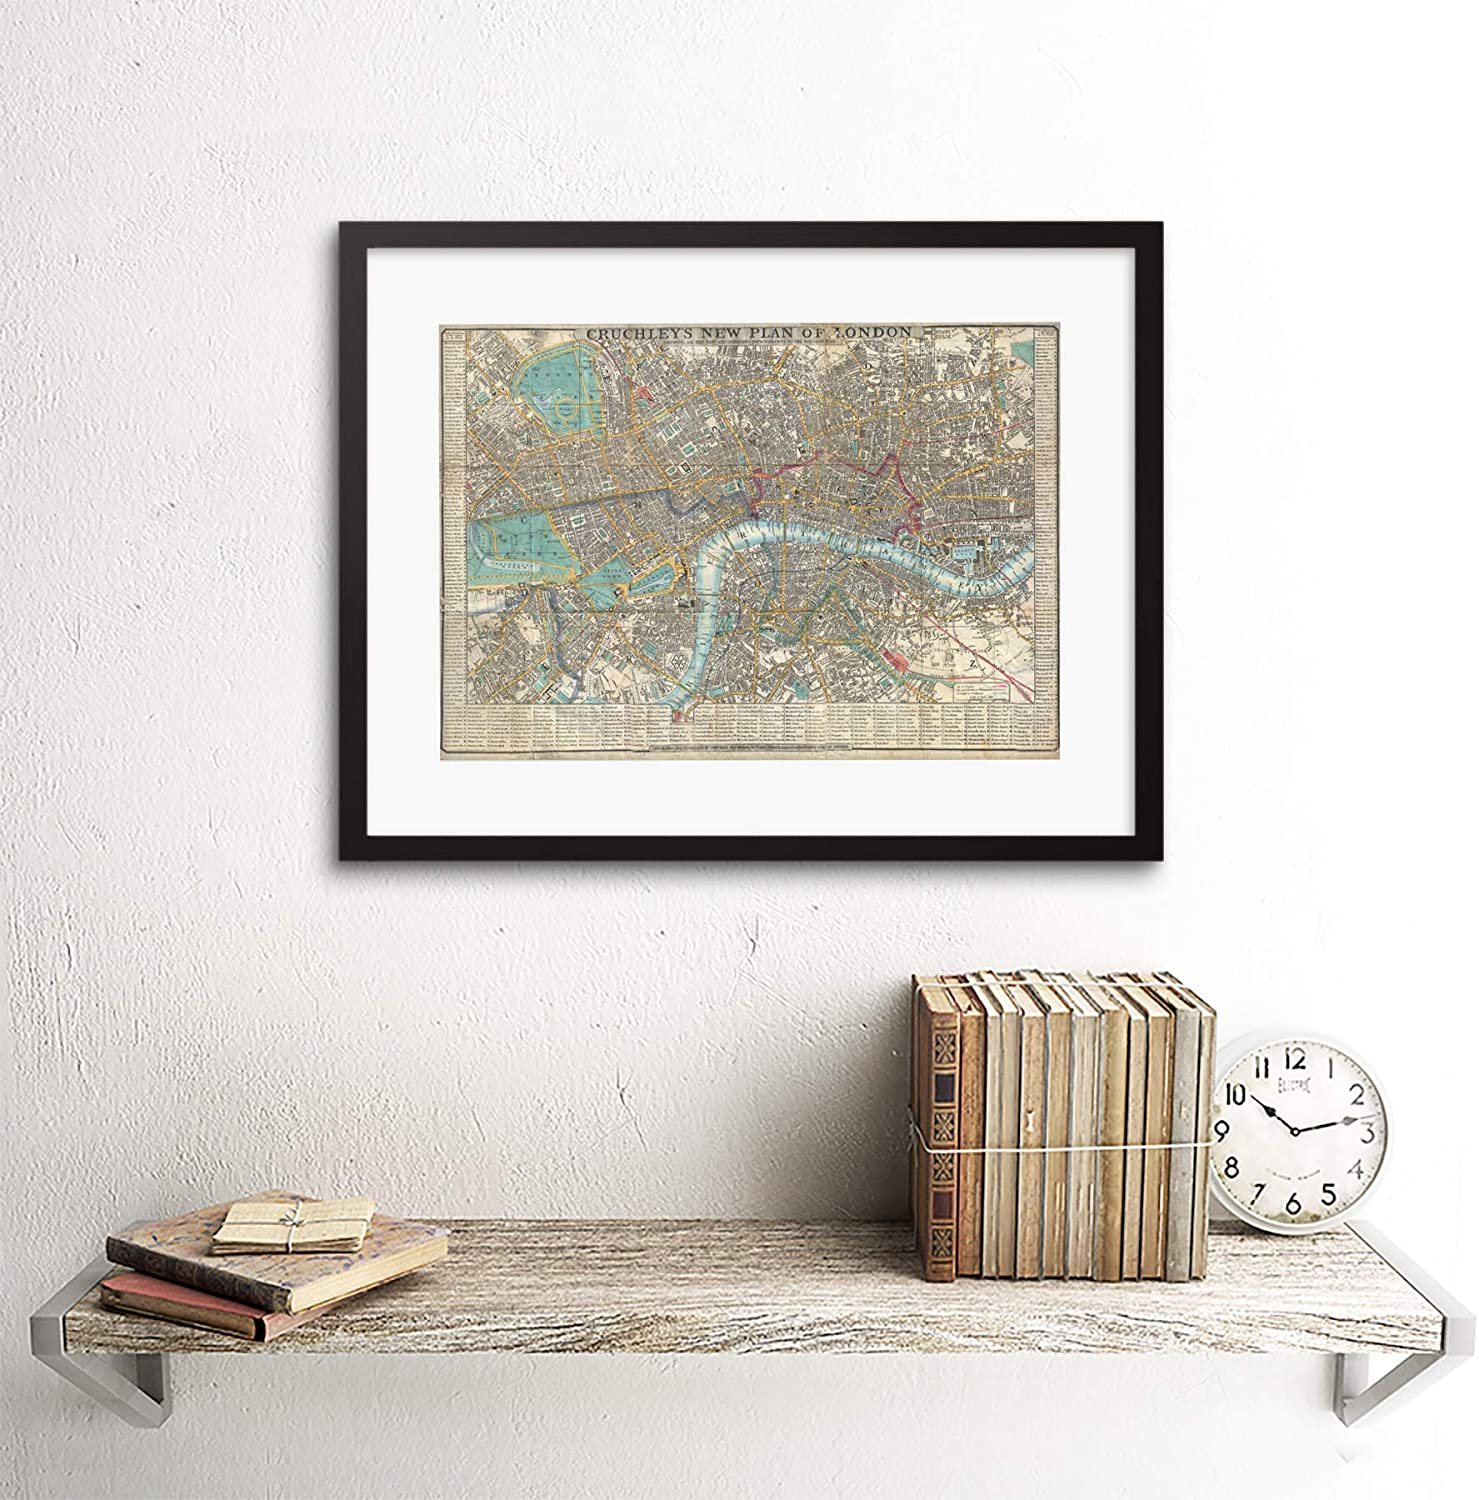 MAP ILLUSTRATED ANTIQUE CRUTCHLEY LONDON Canvas art Prints